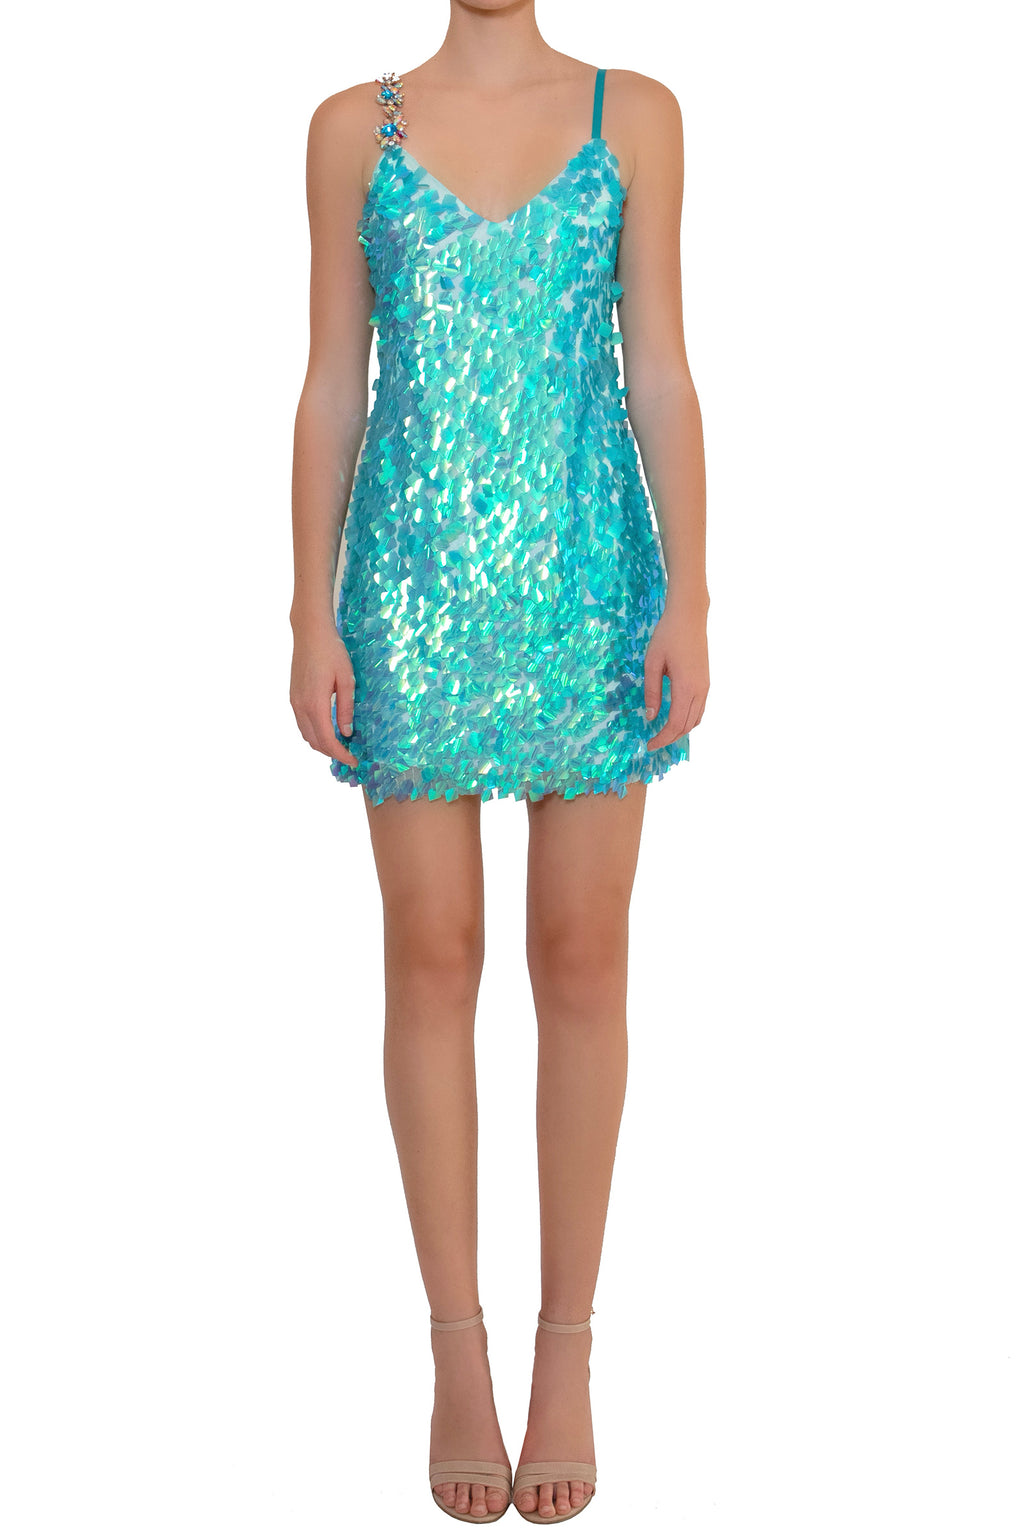 Ilona Rich Embellished  Blue Iridescent Sequin Party Dress